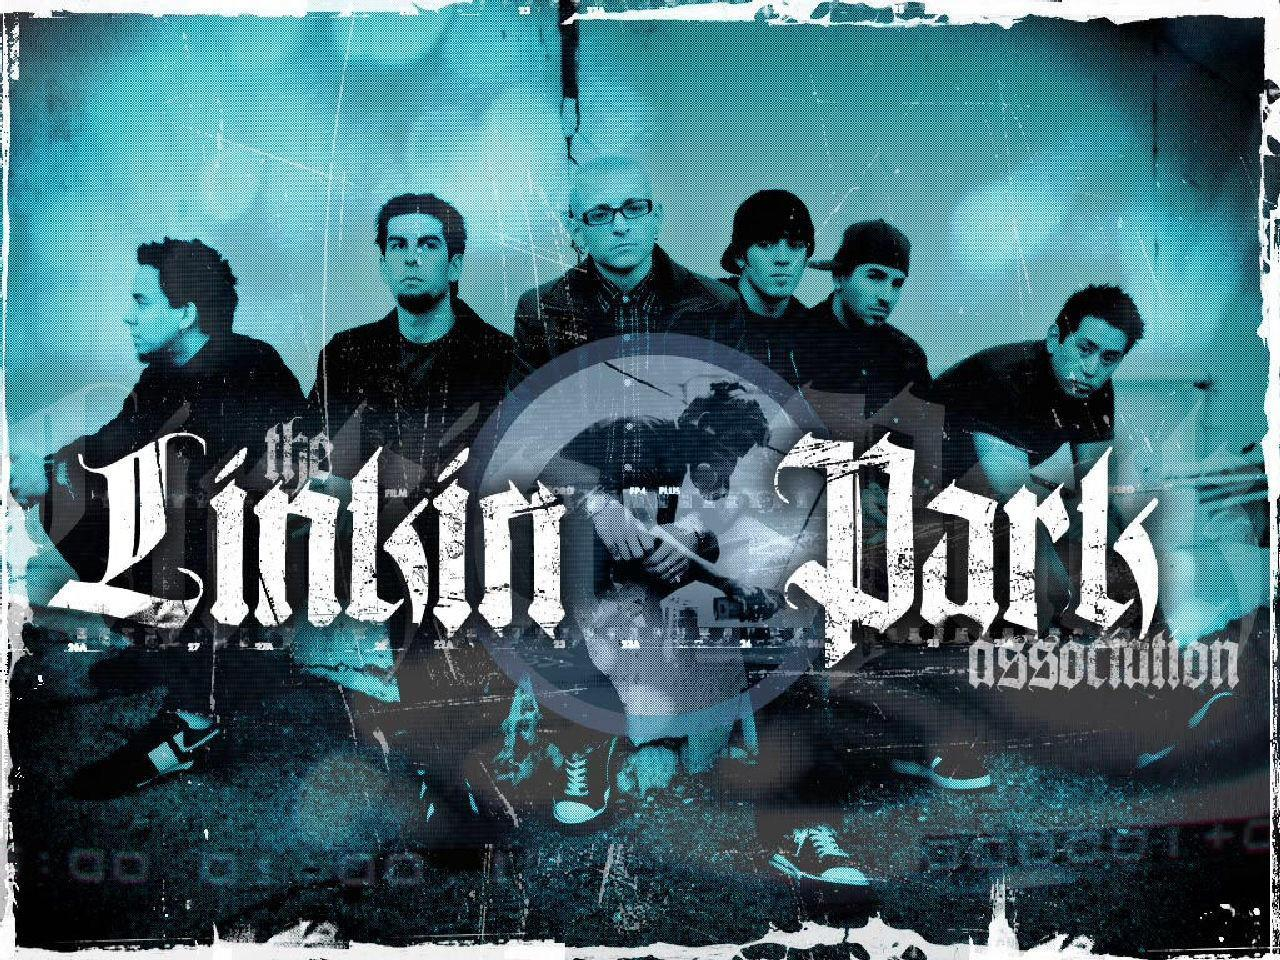 Are u a fan of Linkin Park(the band)?